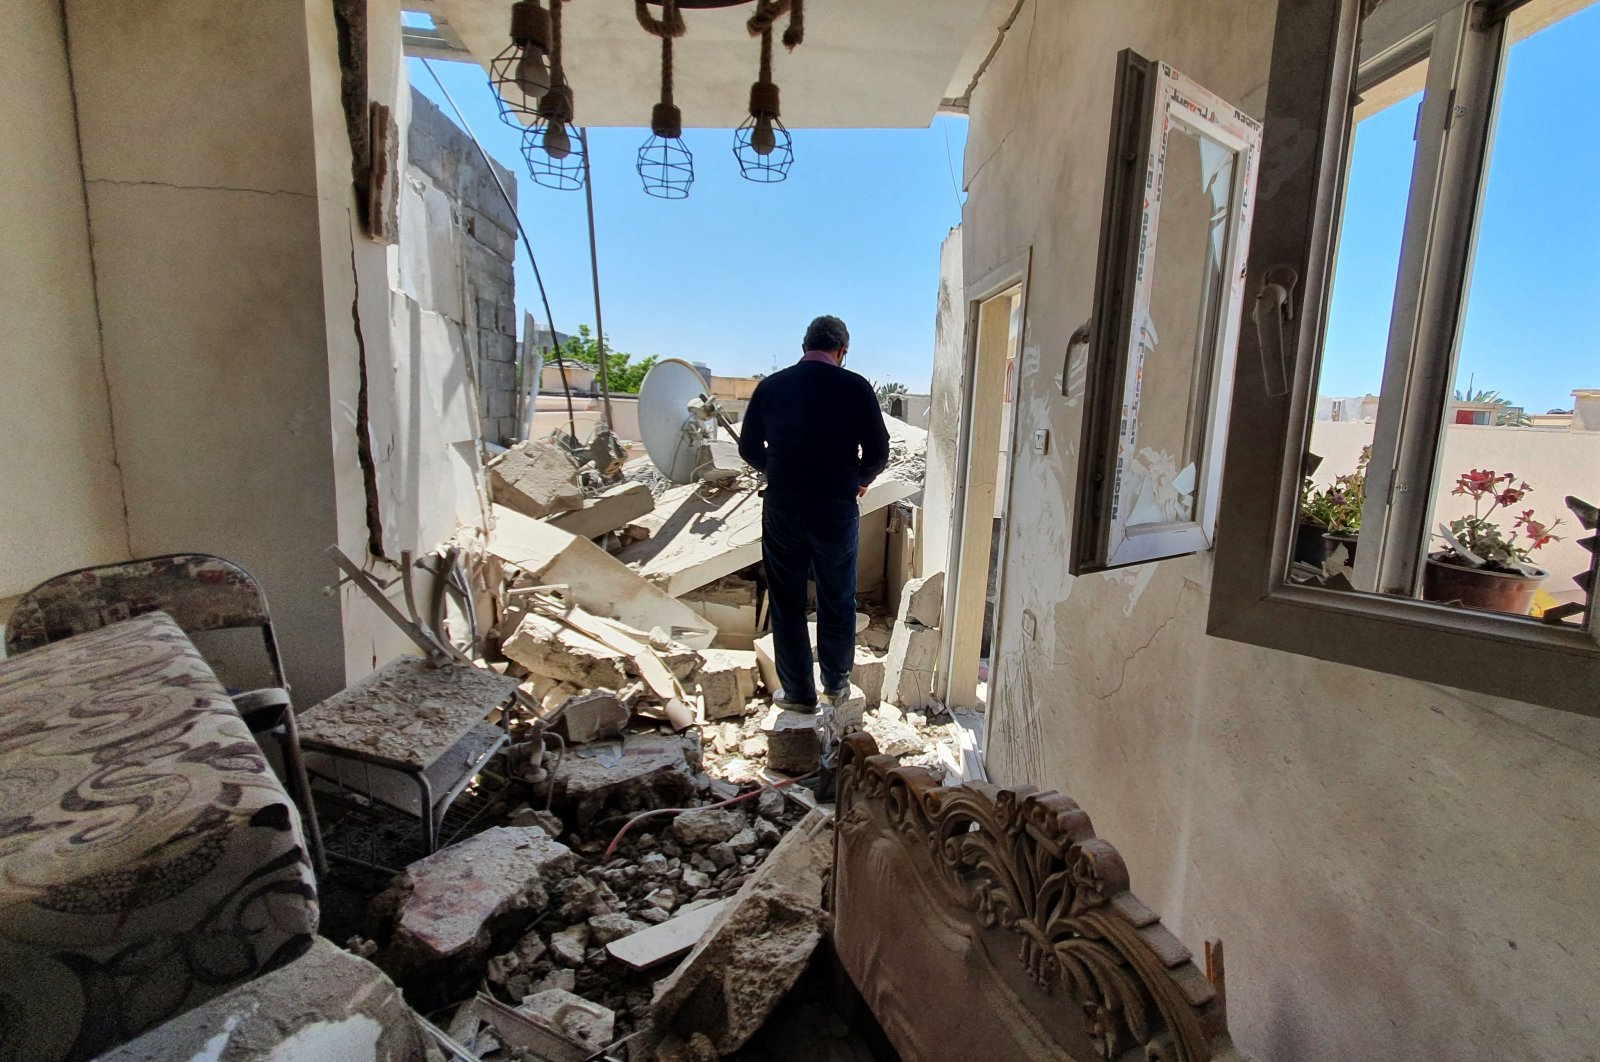 A resident walks amidst the rubble of a building that was damaged when putschist Gen. Khalifa Haftar's forces shelled the residential neighbourhood of Znatah in the Libyan capital Tripoli, held by the U.N.-recognized Government of National Accord (GNA), on May 1, 2020. (AFP Photo)